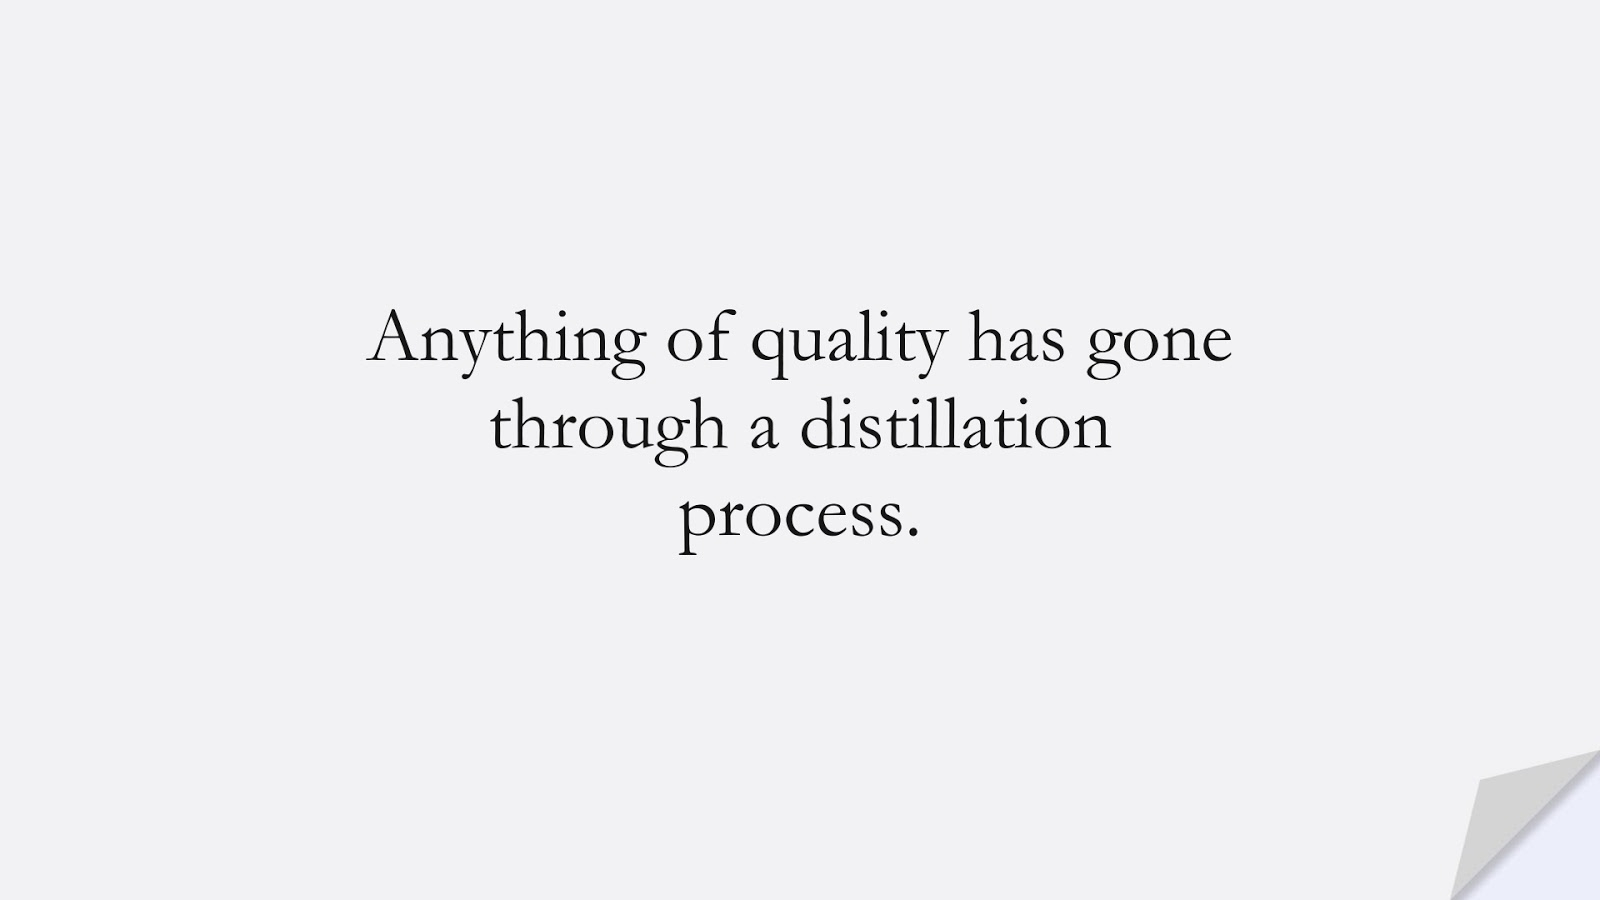 Anything of quality has gone through a distillation process.FALSE